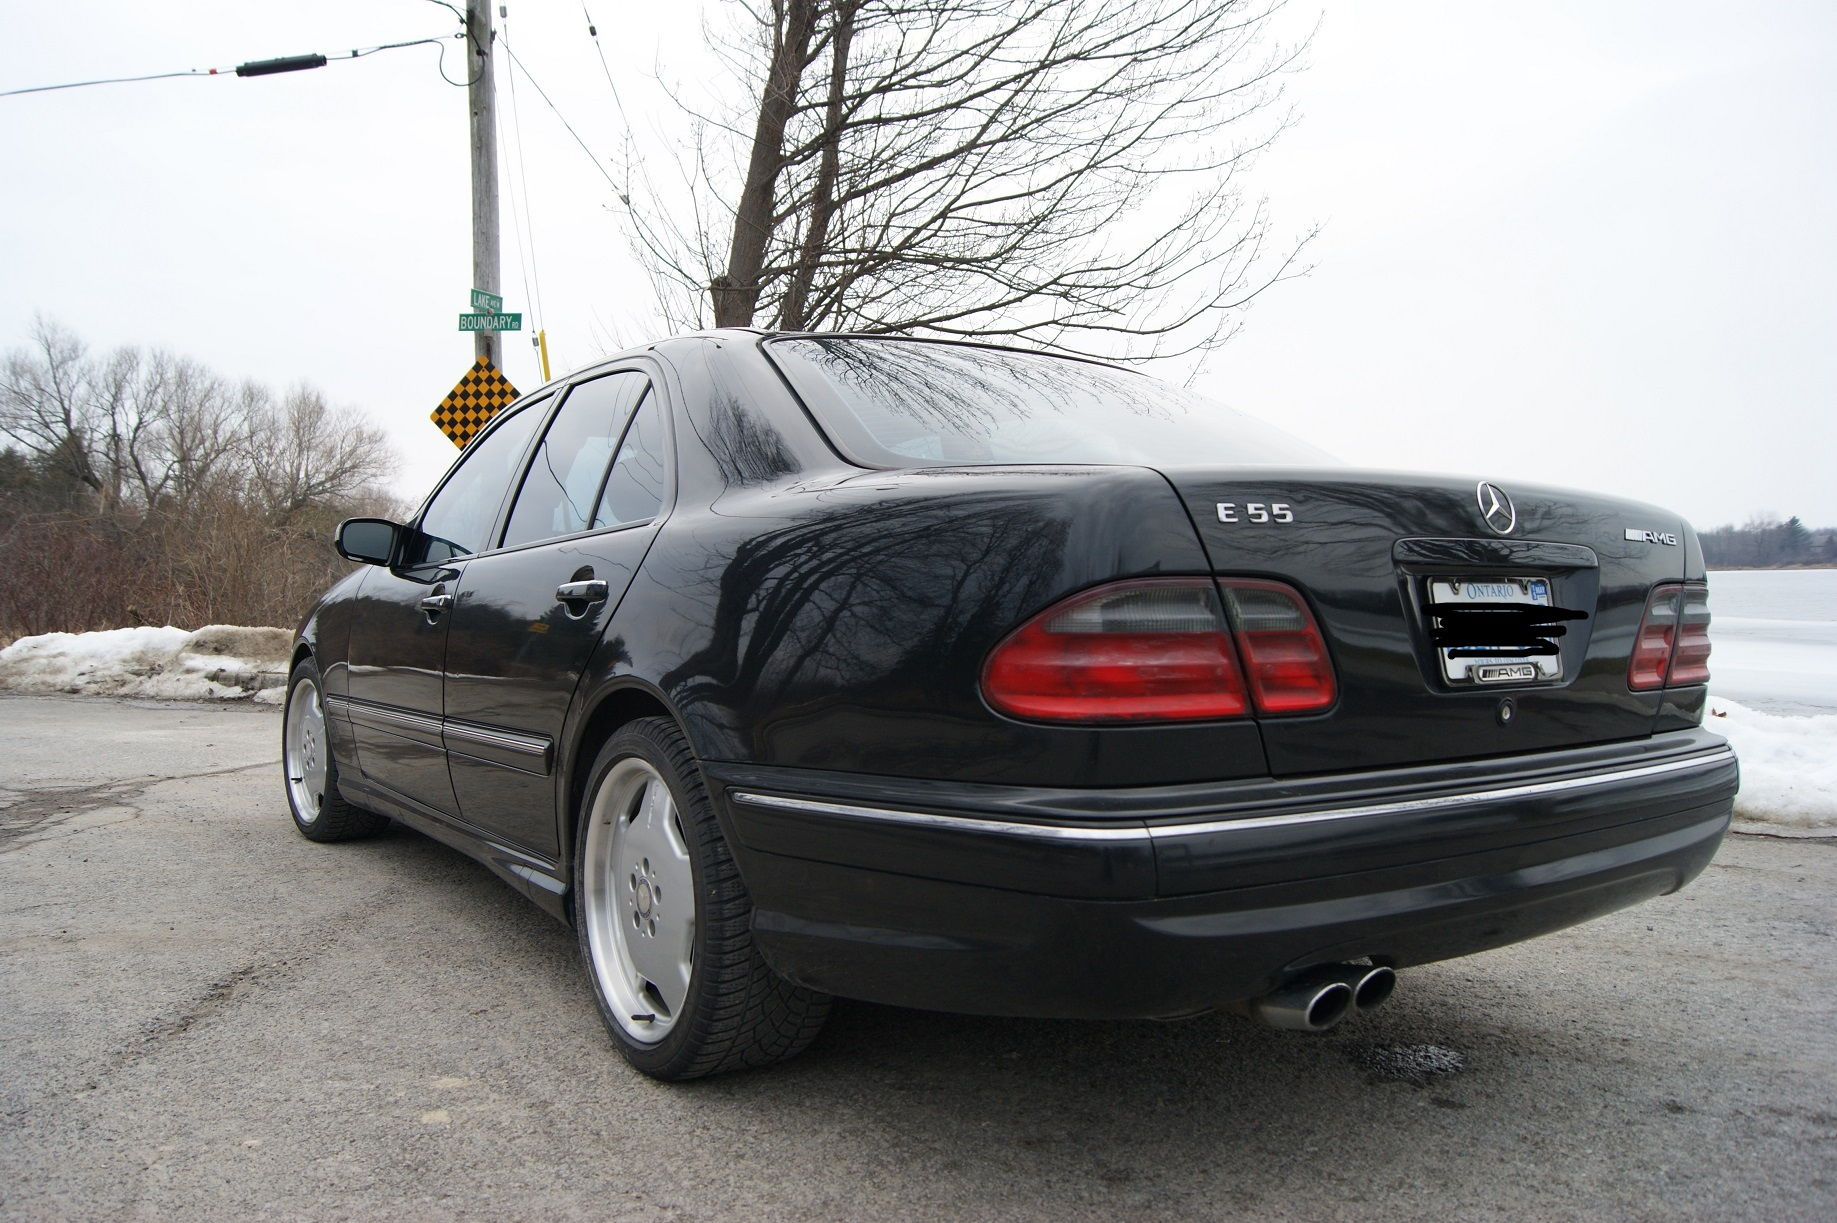 fs 2002 mercedes e55 amg w210 9000 on canada forums. Black Bedroom Furniture Sets. Home Design Ideas